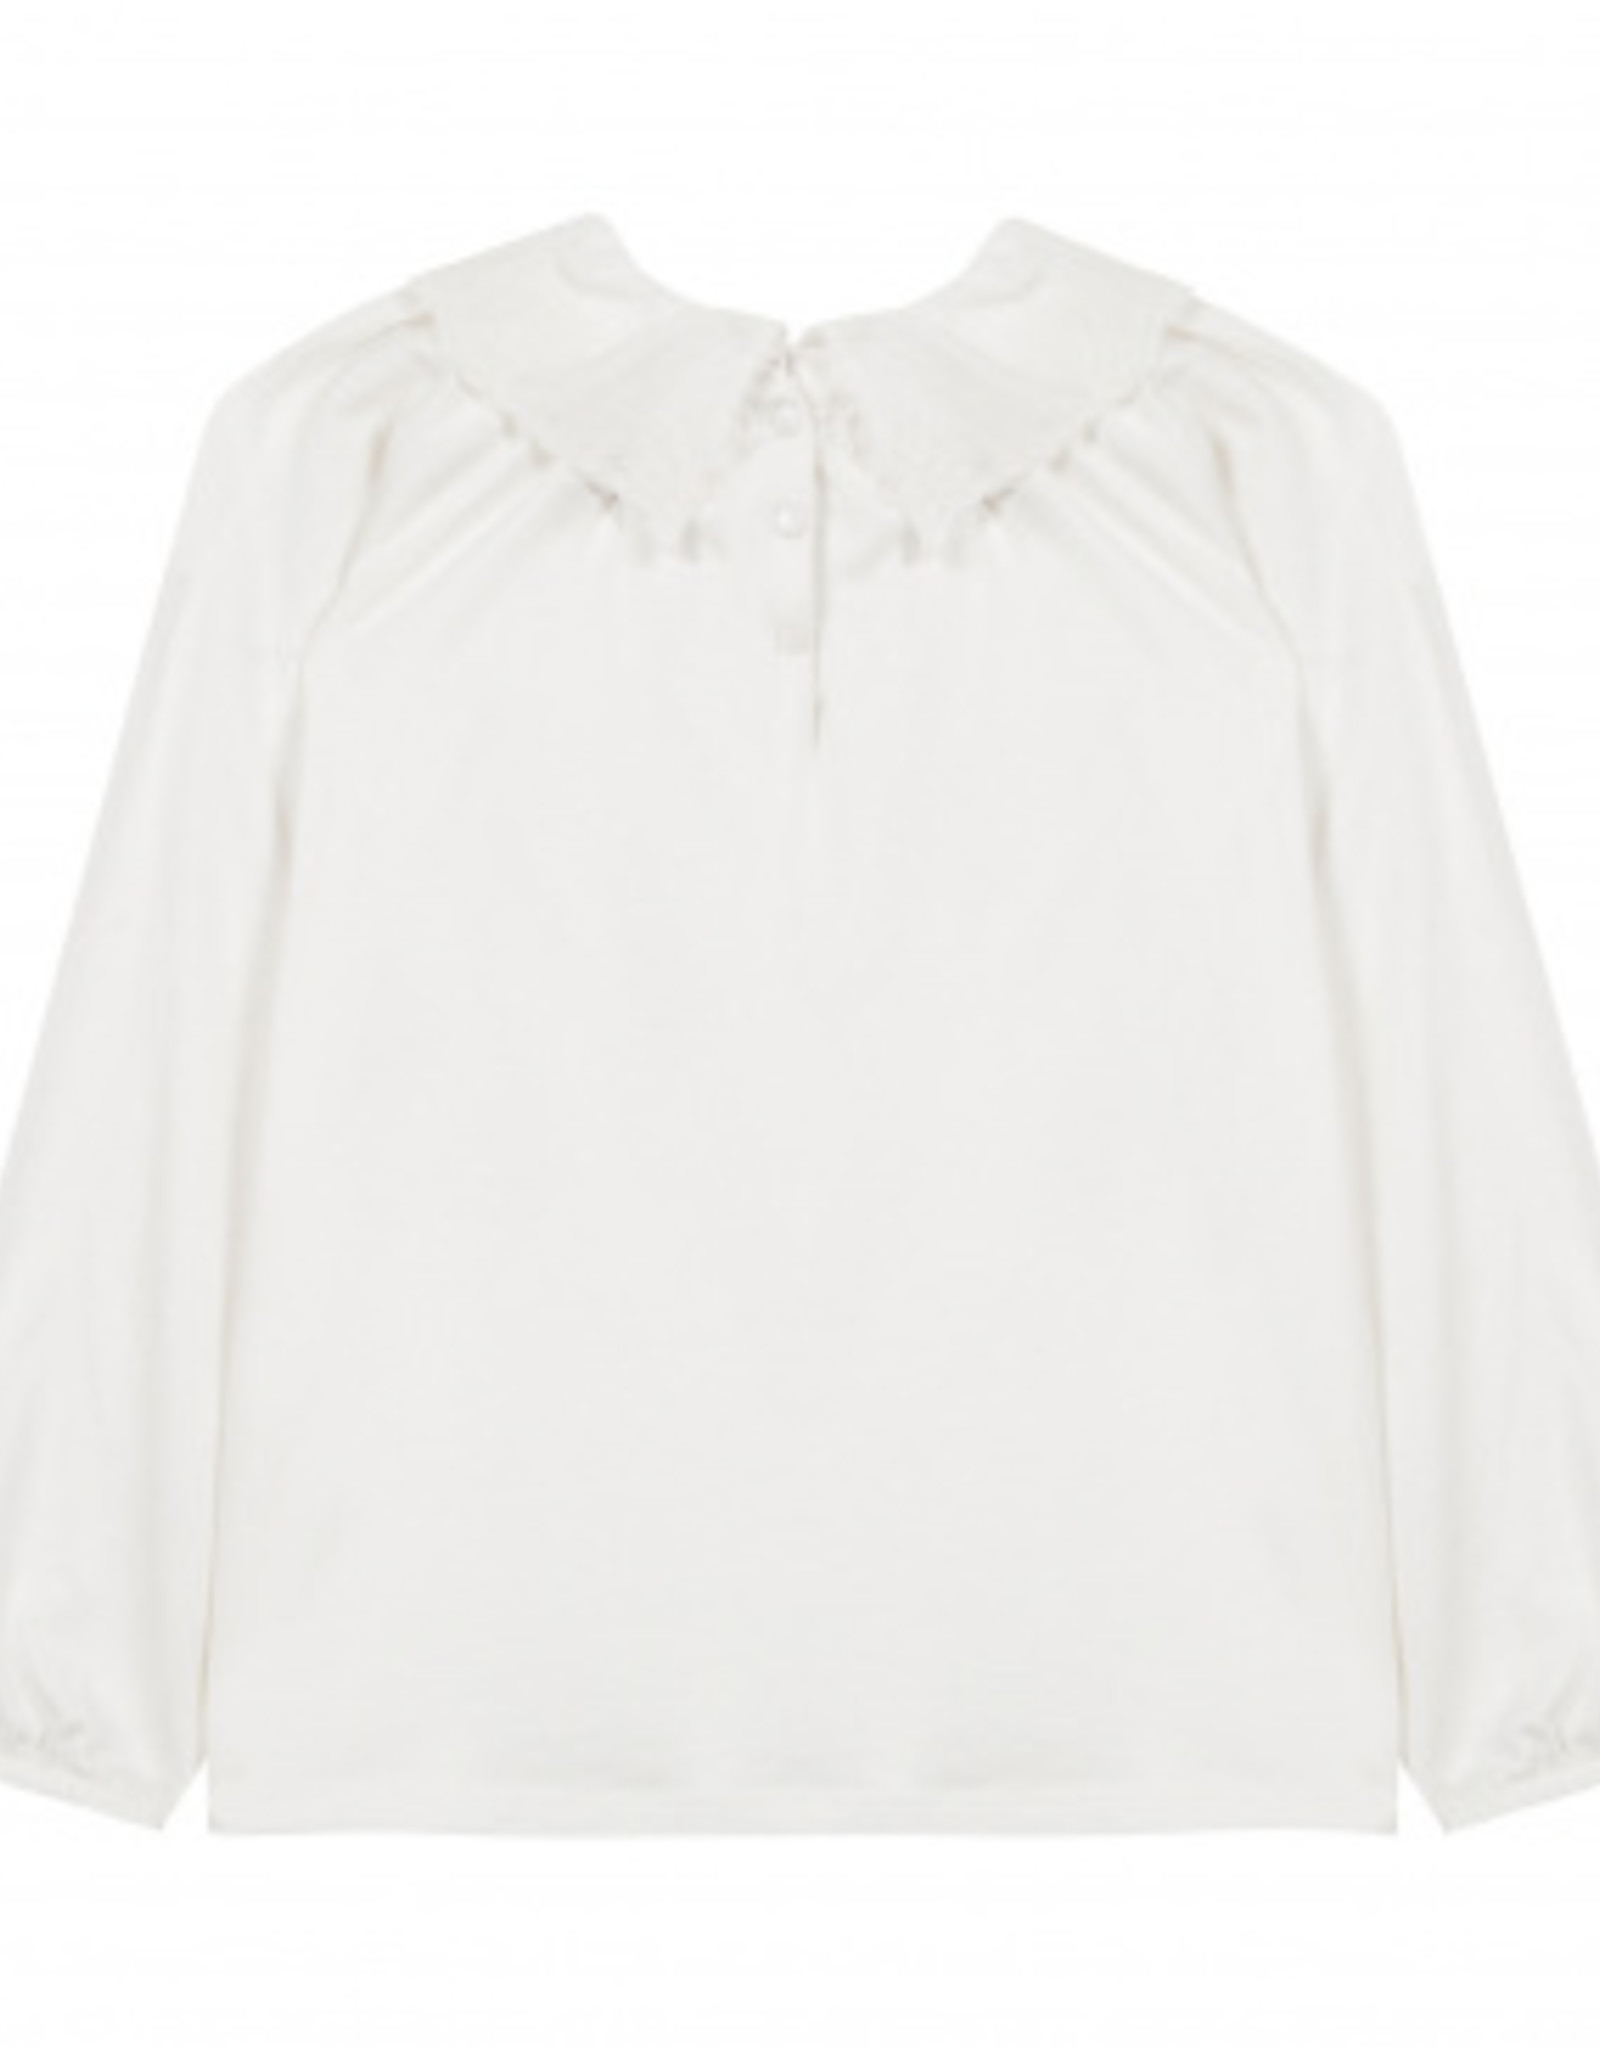 T-shirt with ruffled collar